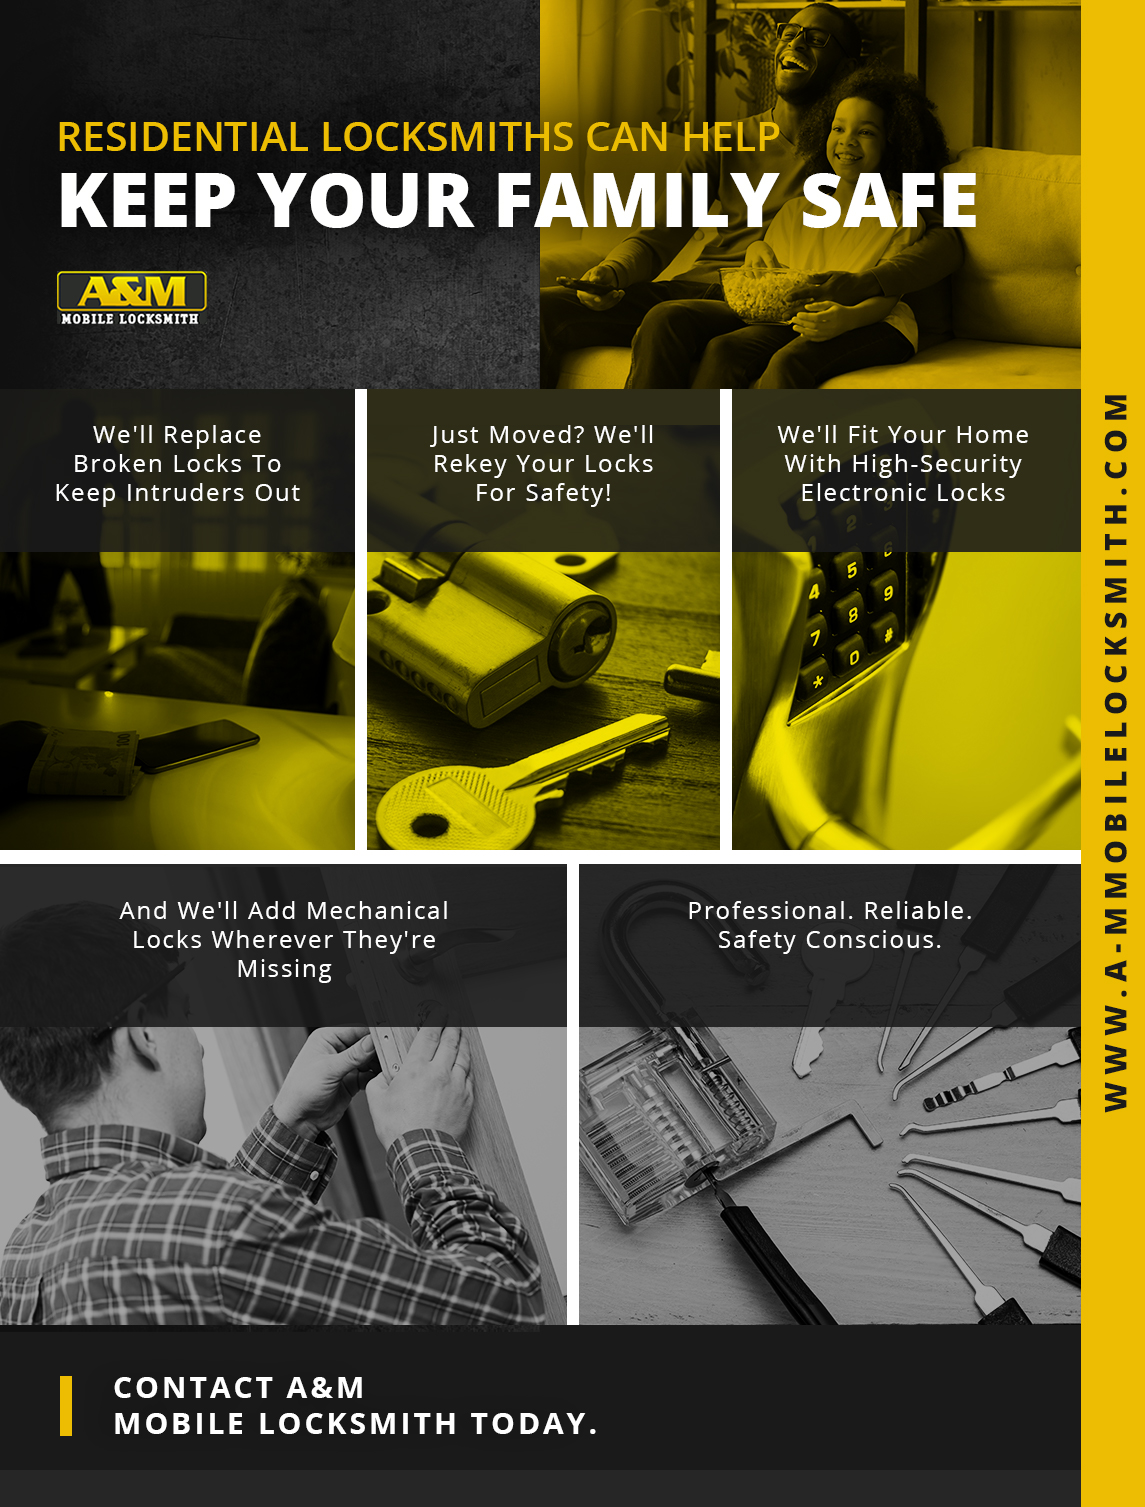 Infographic: Residential Locksmiths Can Help Keep Your Family Safe